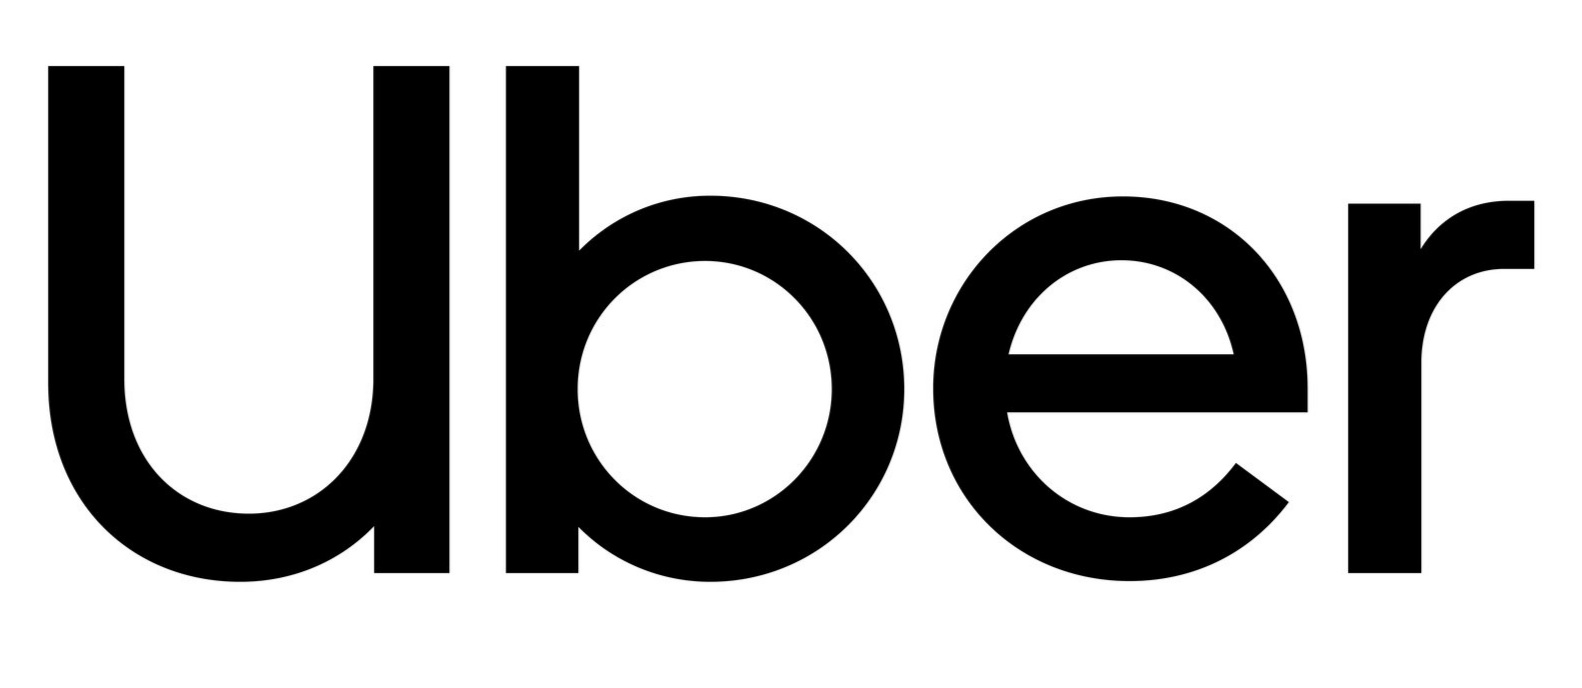 Uber_Logo_Black_RGB copy.jpg